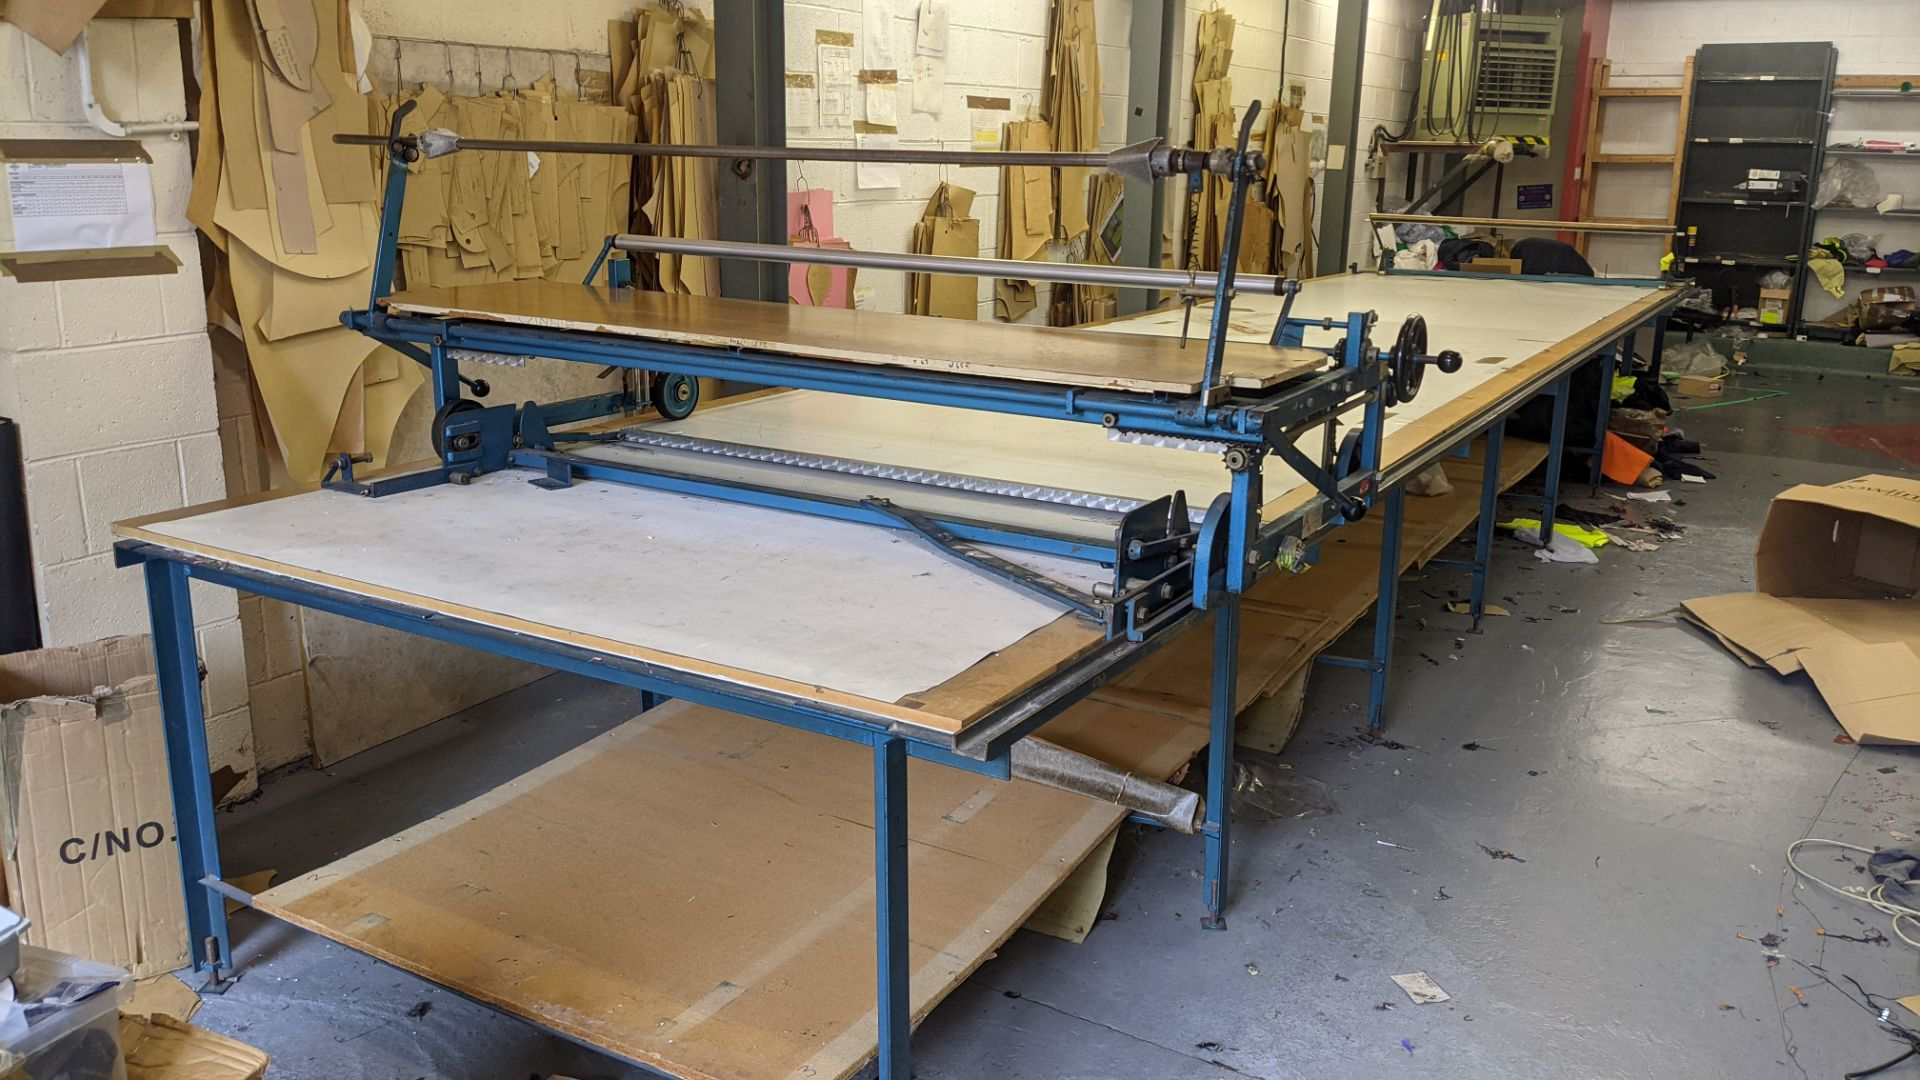 Large cutting table, as shown in 3 stacks. Please note photos taken in situ before the table was de